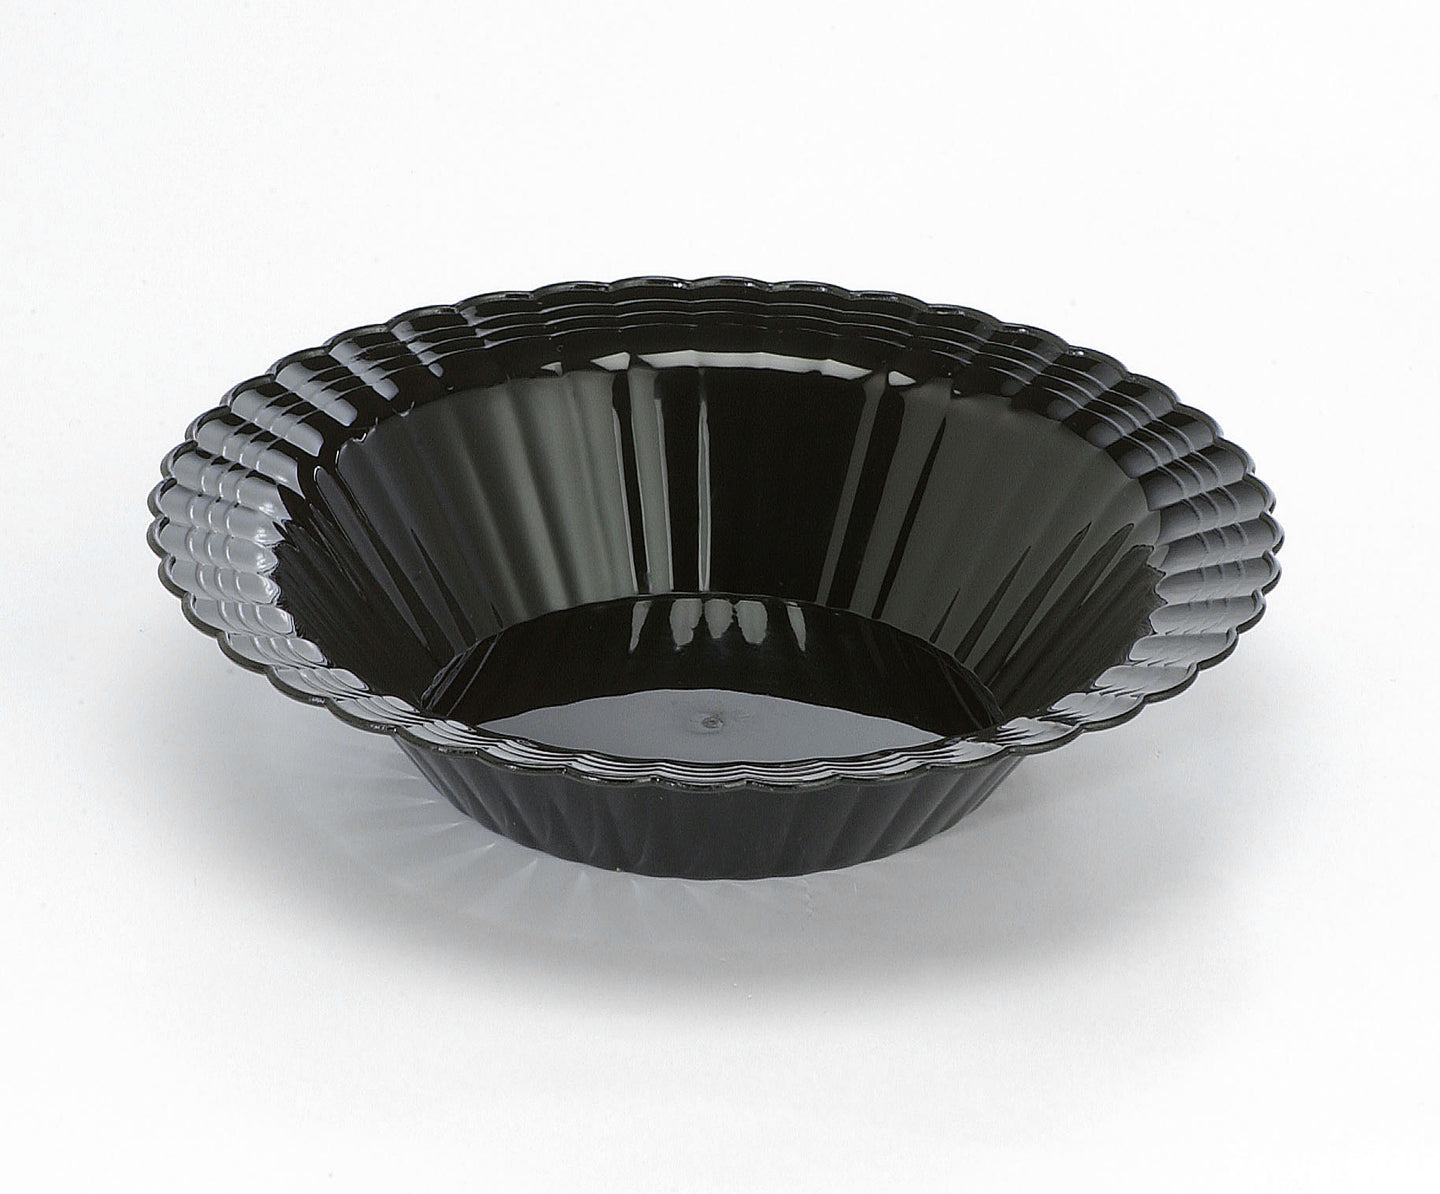 EMI-REB12B Round Single Serve 12 oz Bowl - Black